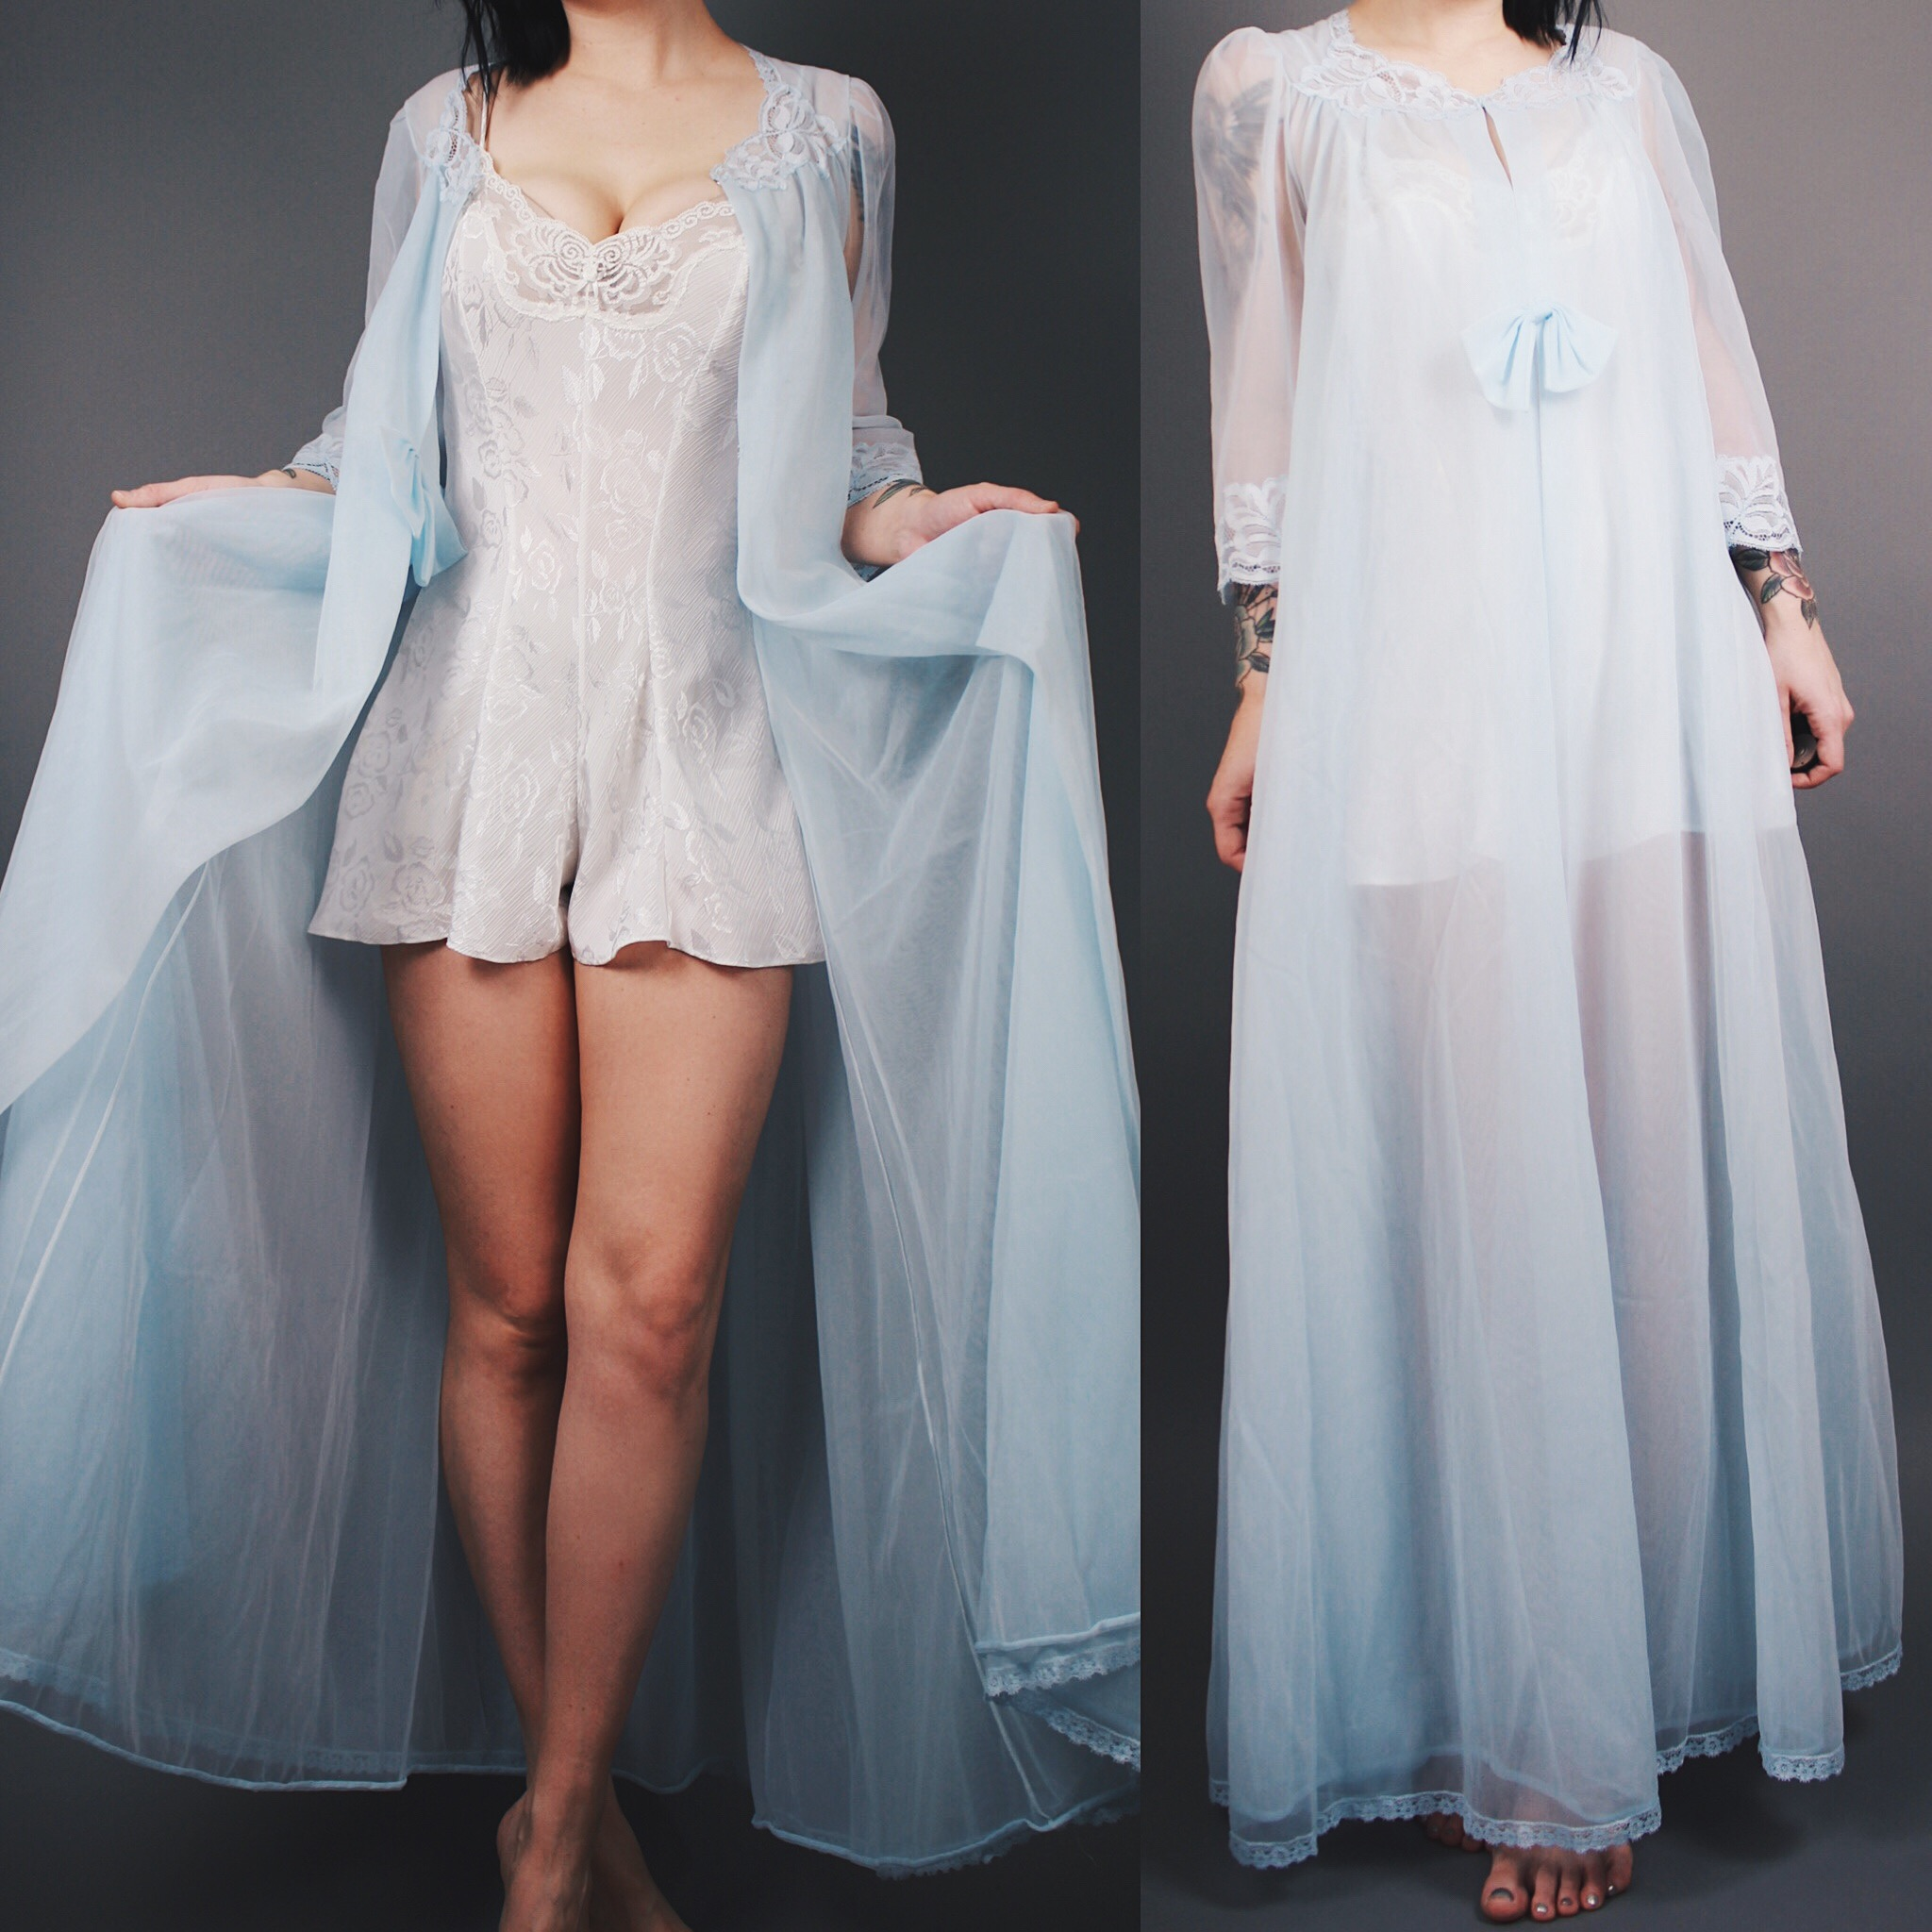 353ad47bc1de CLAIMED @_nicecube_ Vintage 1960s Baby Blue Flowy Maxi Nightgown Robe